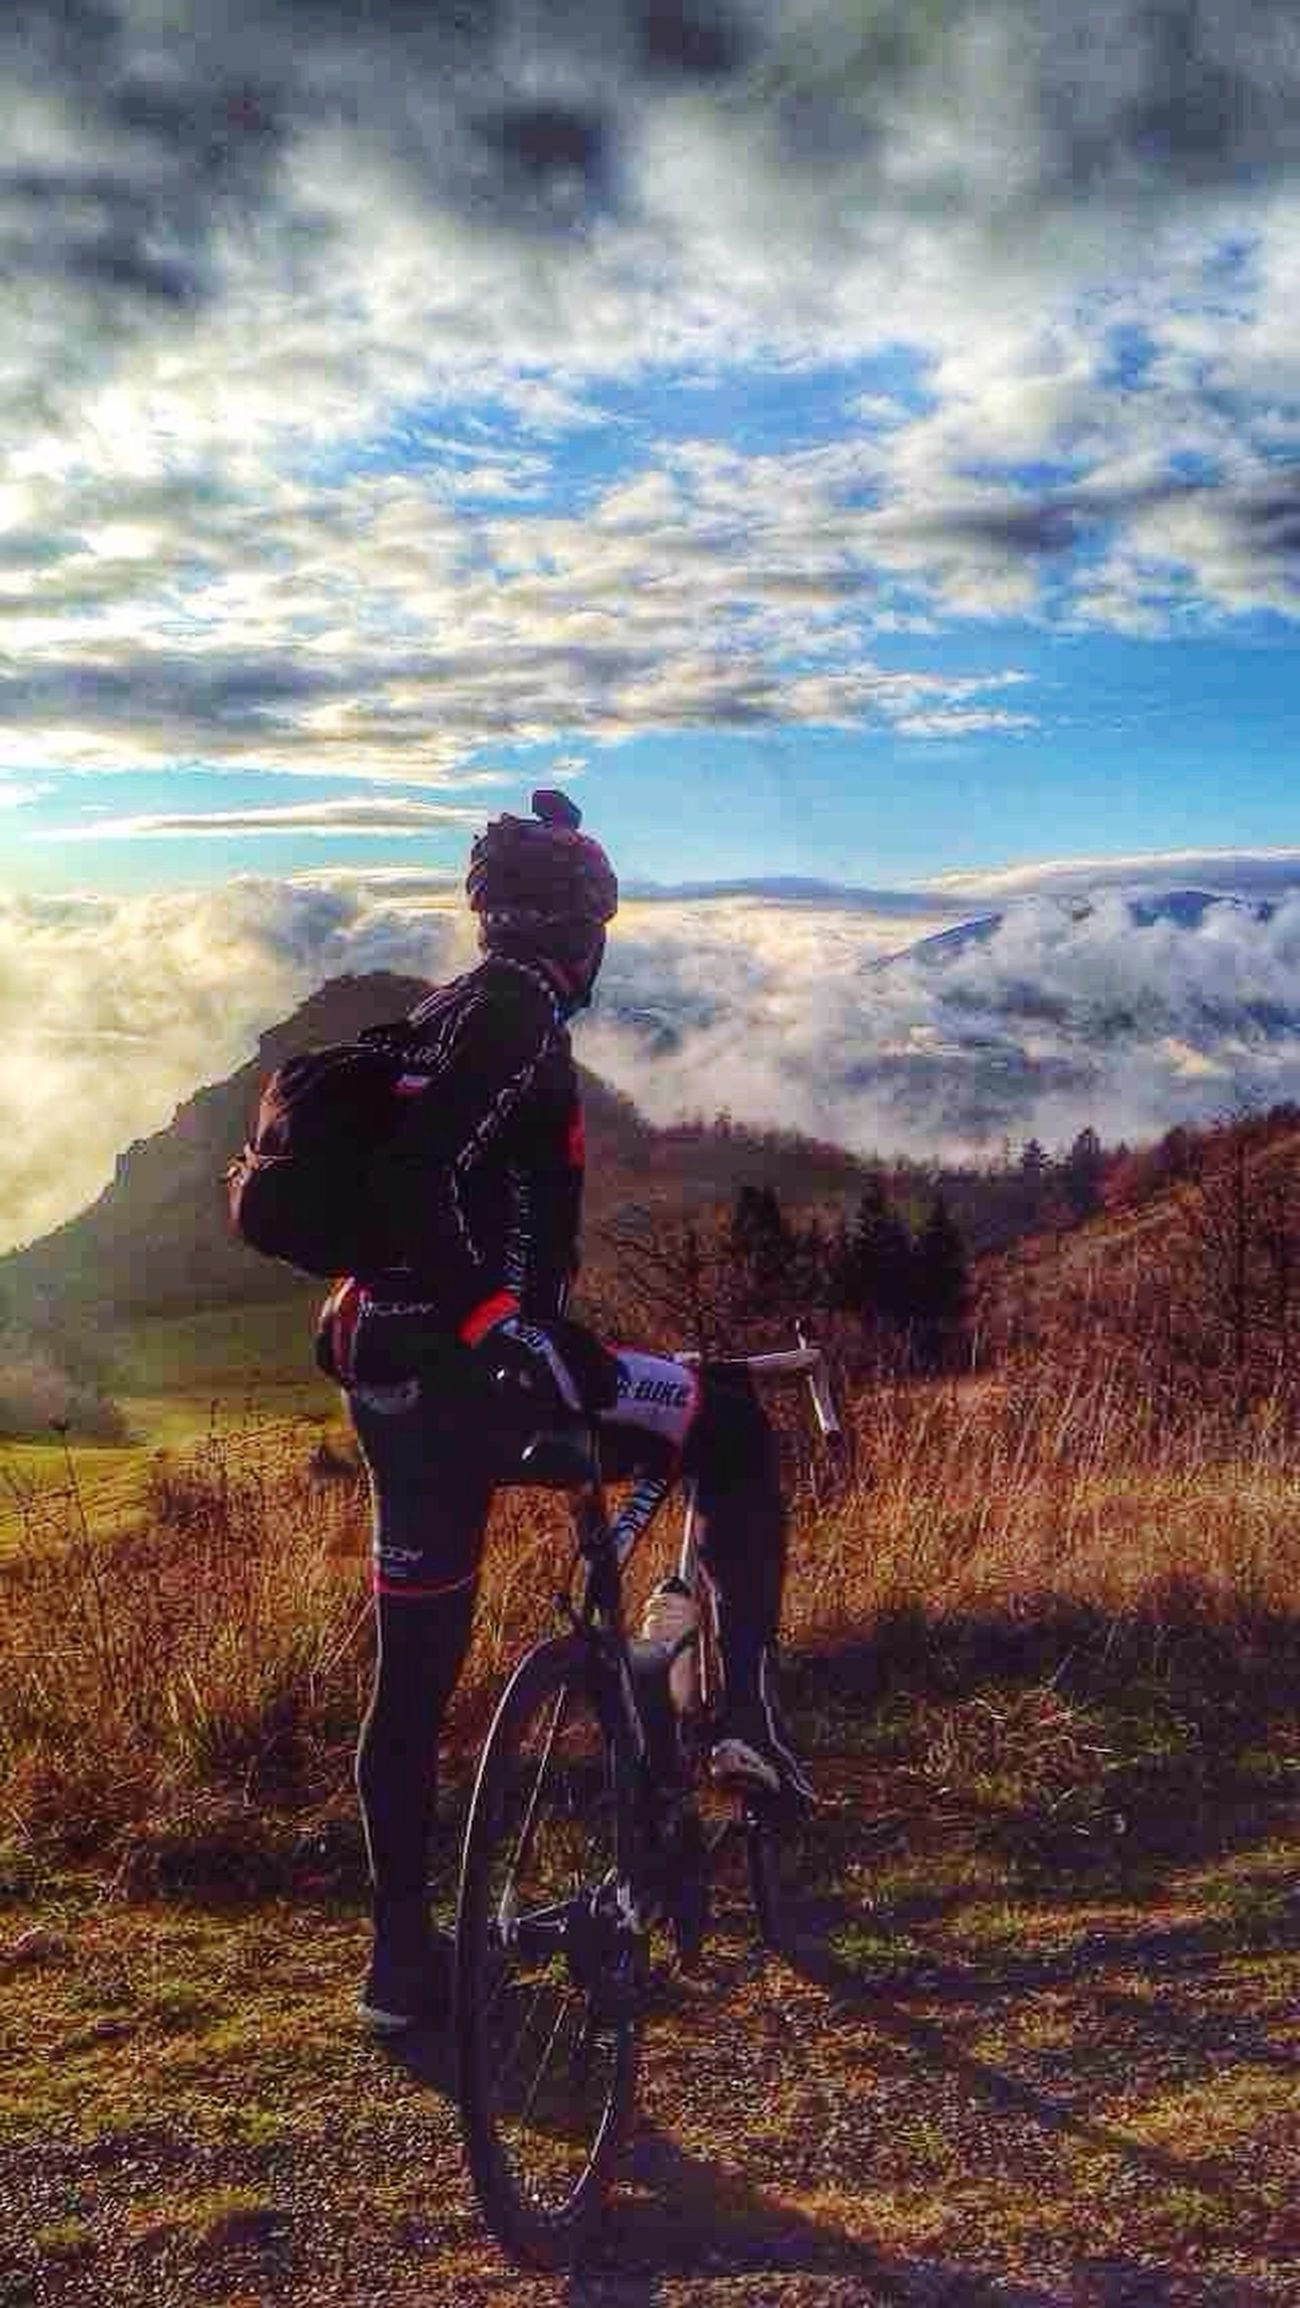 I love this place Leisure Activity Bicycle Outdoors Men Beauty In Nature Sky One Person Cloud - Sky Scenics Adult Vacations Mountain Bike Nature Adults Only People Landscape Day Biker Only Men